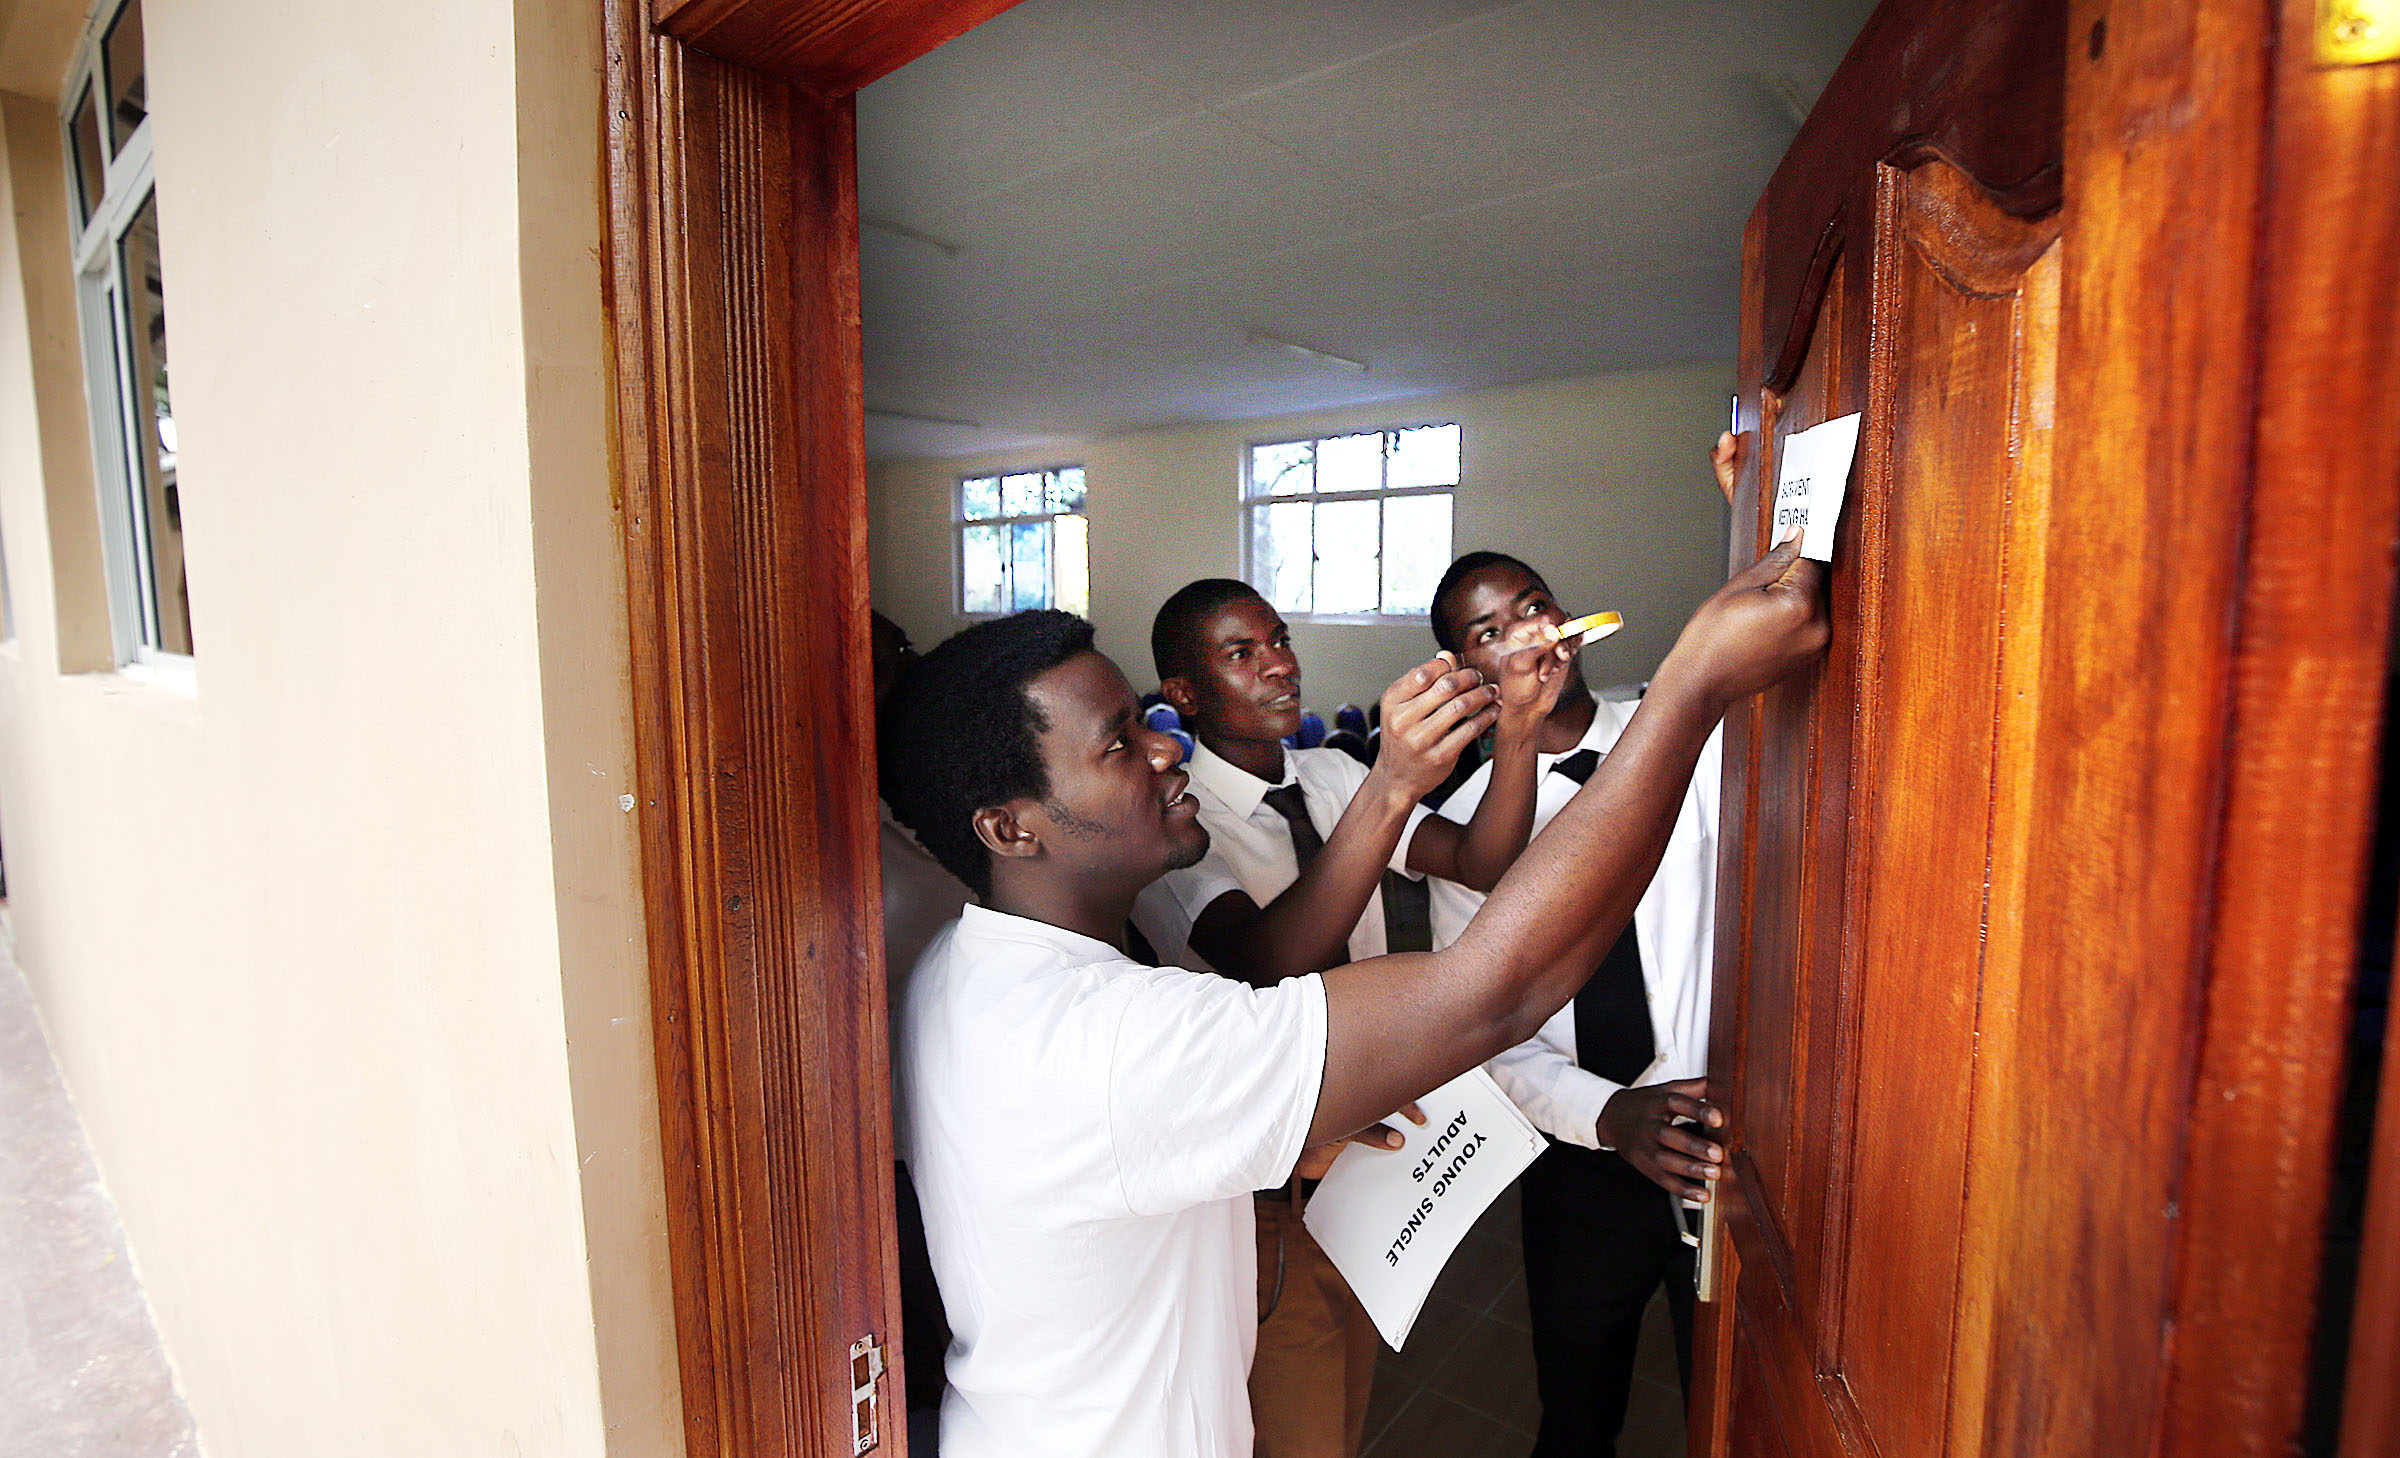 Robinson Imende, left, Jeff Busutu and Samuel Mburu put up a sign to show where sacrament meeting will be held during an open house at the Rongai meetinghouse on the outskirts of Nairobi on Saturday, April 14, 2018.